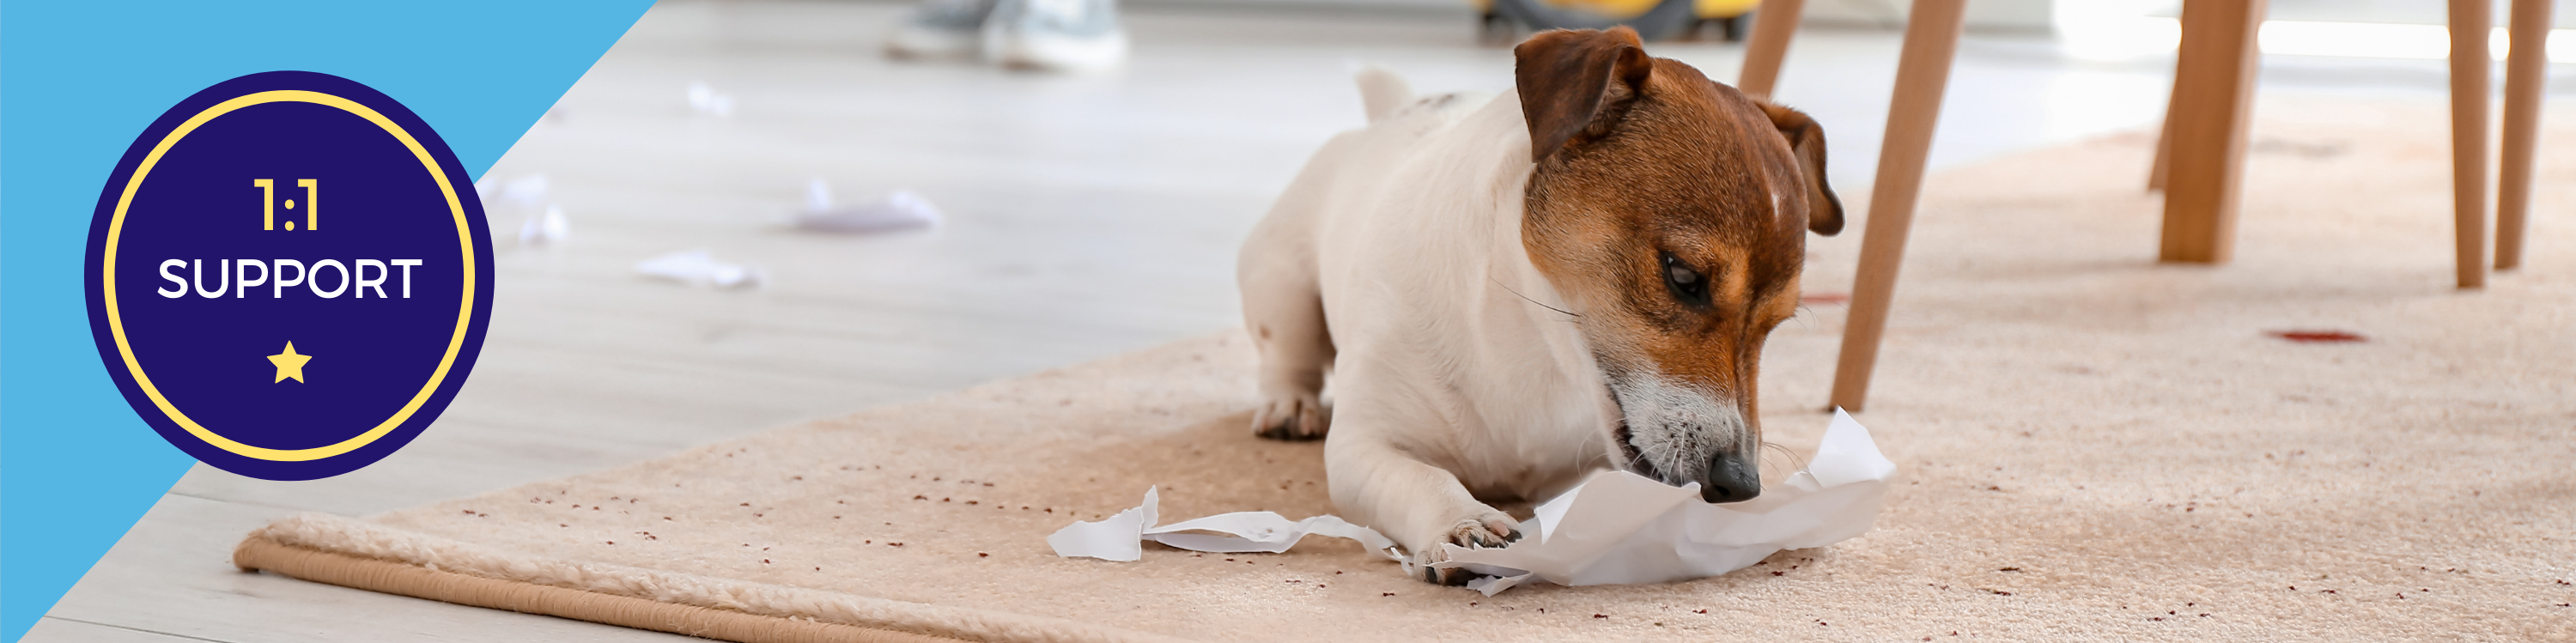 Dog chewing up paper on the floor